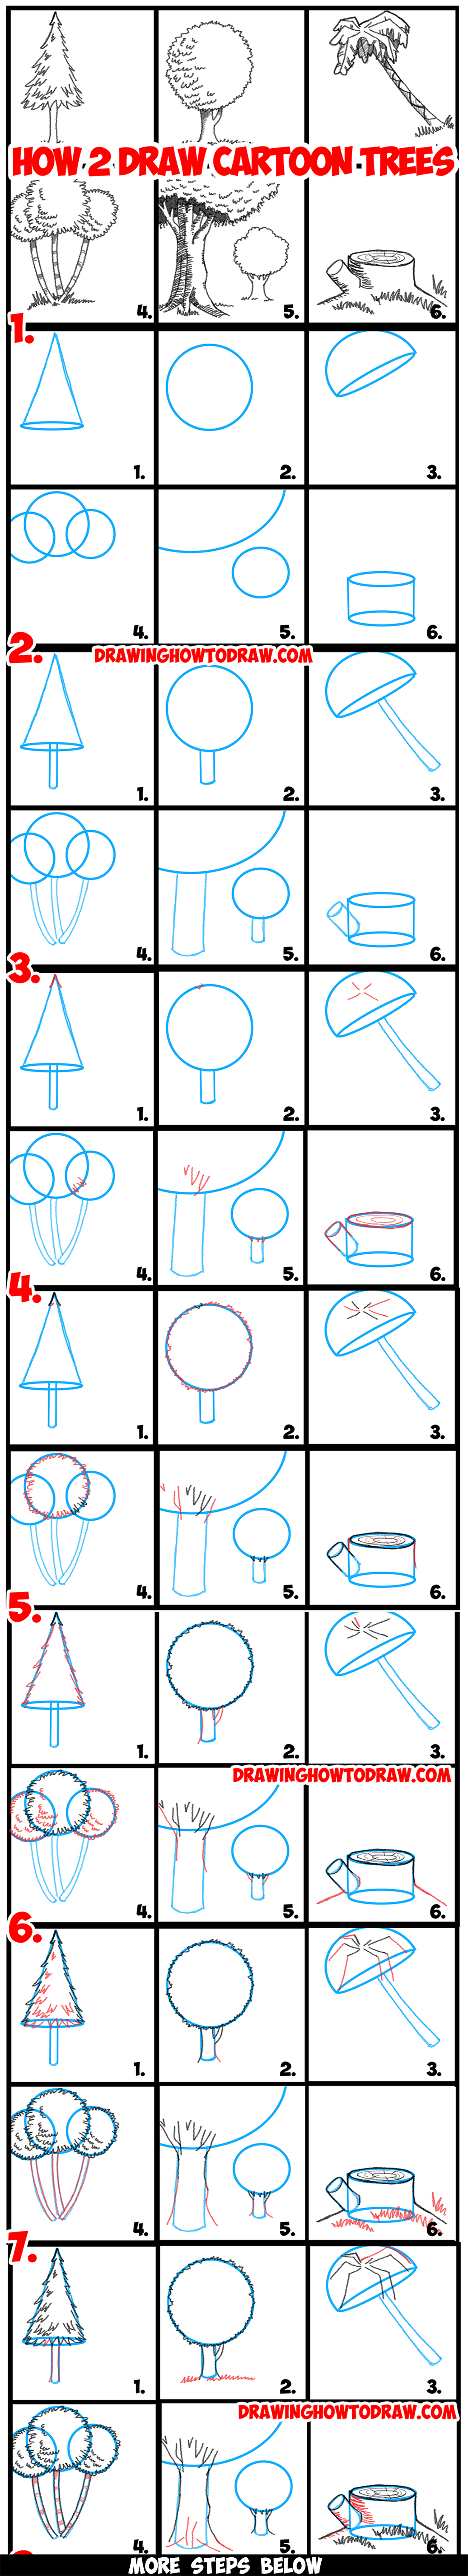 Guide to Drawing Cartoon Trees with Basic Geometric Shapes - Step by Step for Beginners and Kids